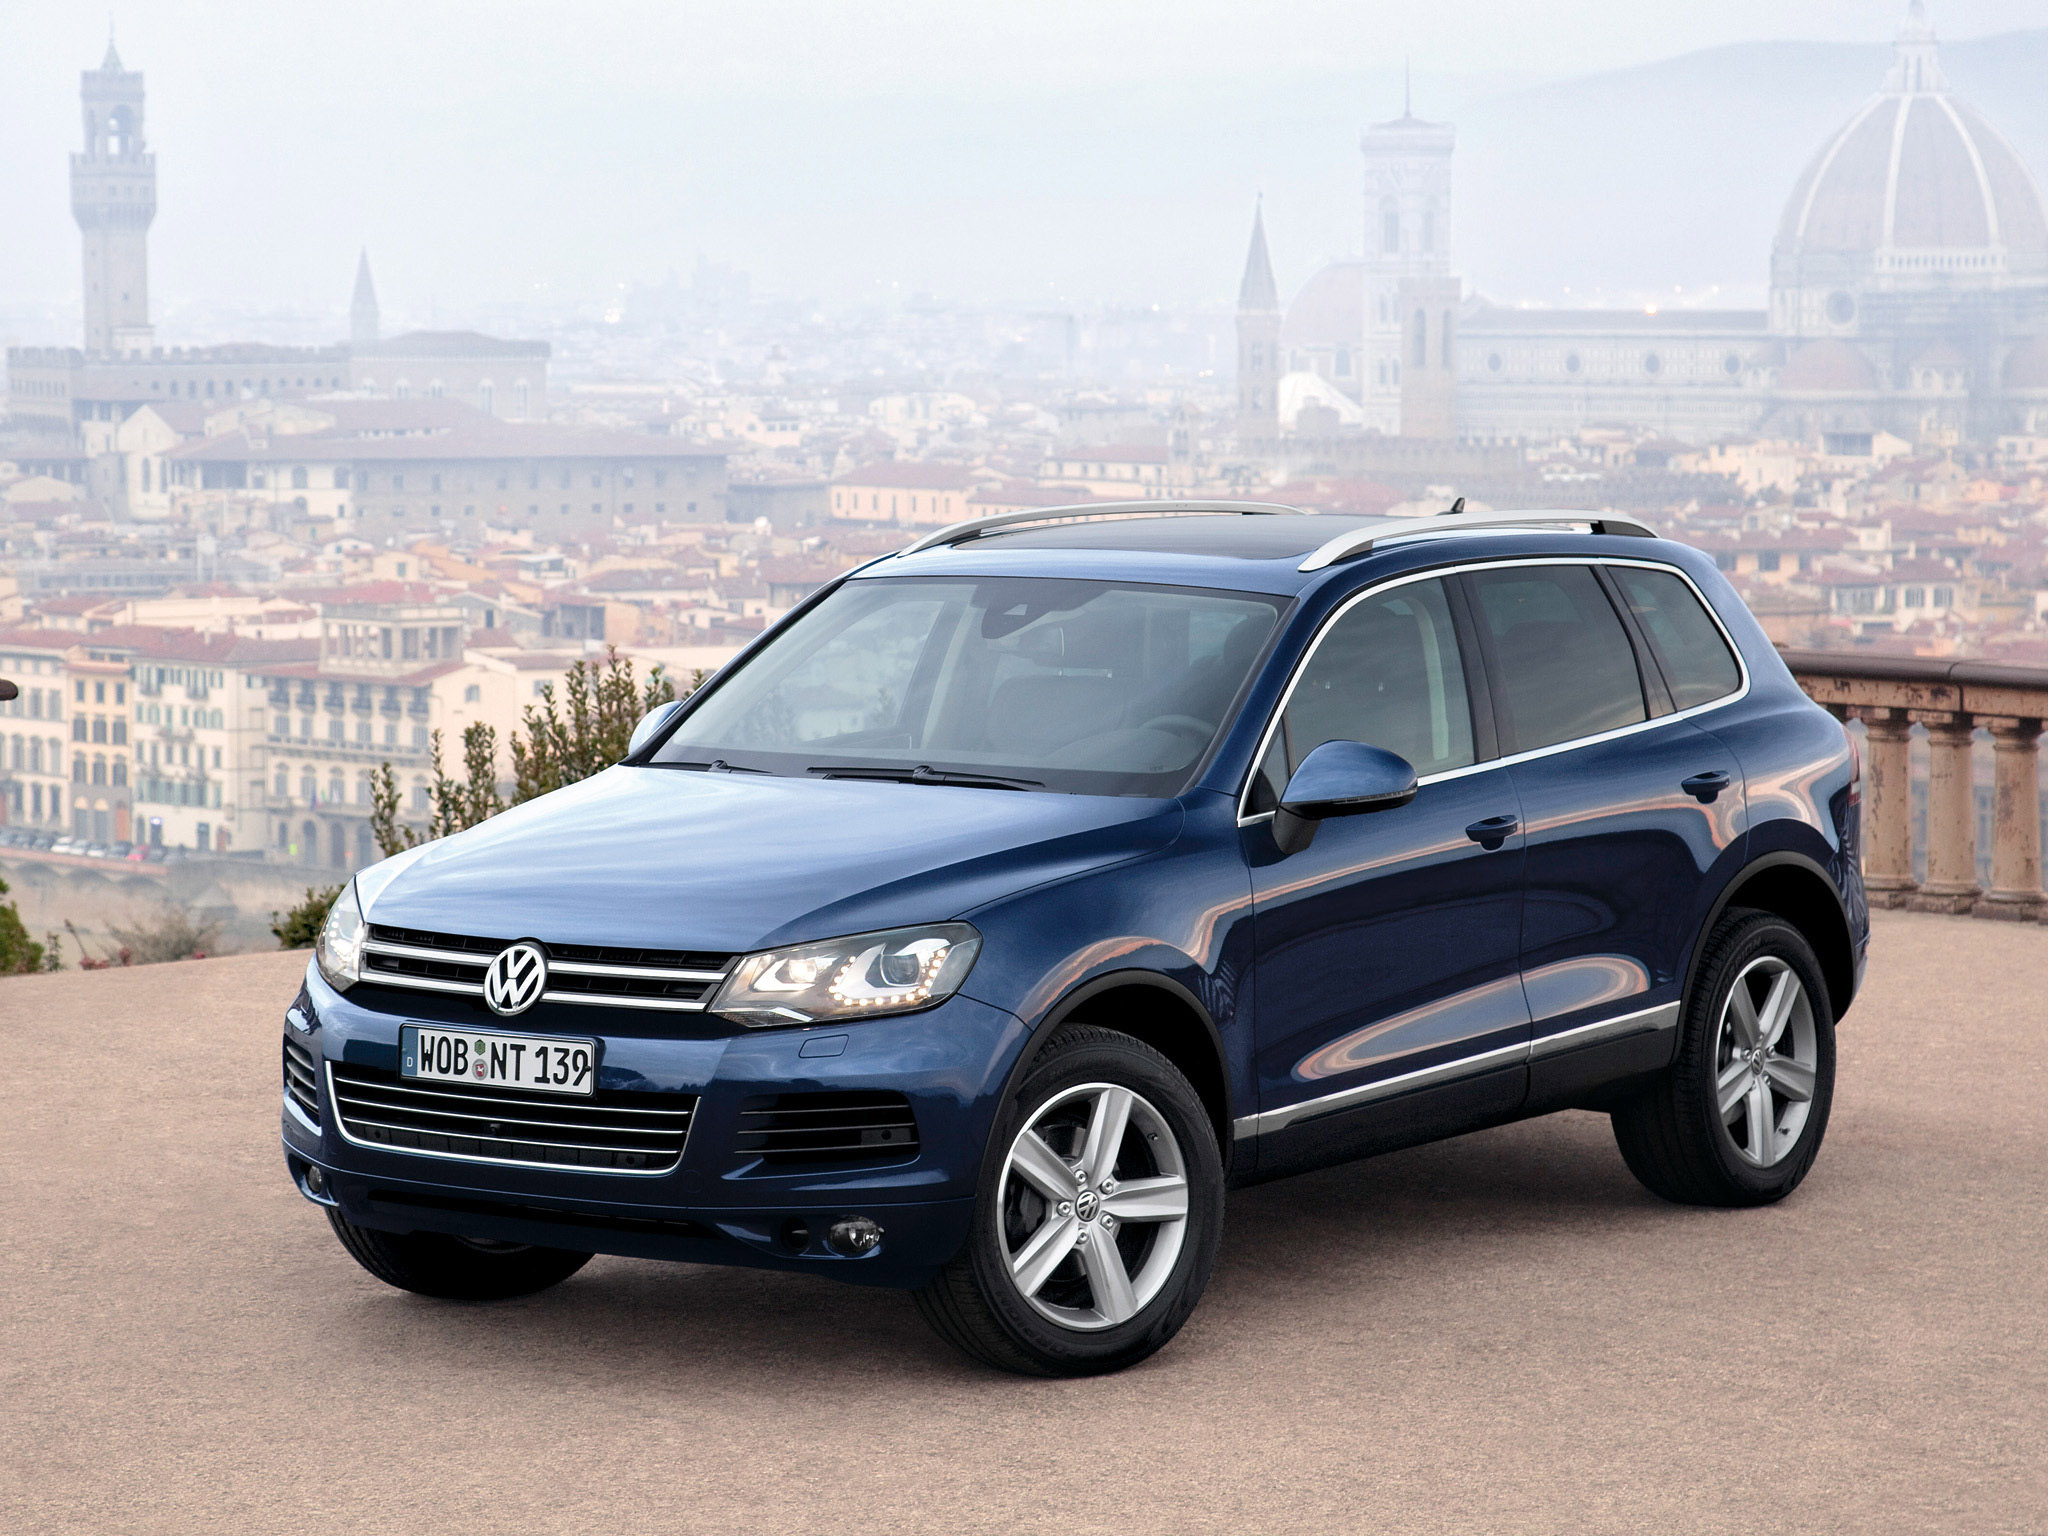 volkswagen touareg 2014 2017 2018 2019 volkswagen reviews. Black Bedroom Furniture Sets. Home Design Ideas